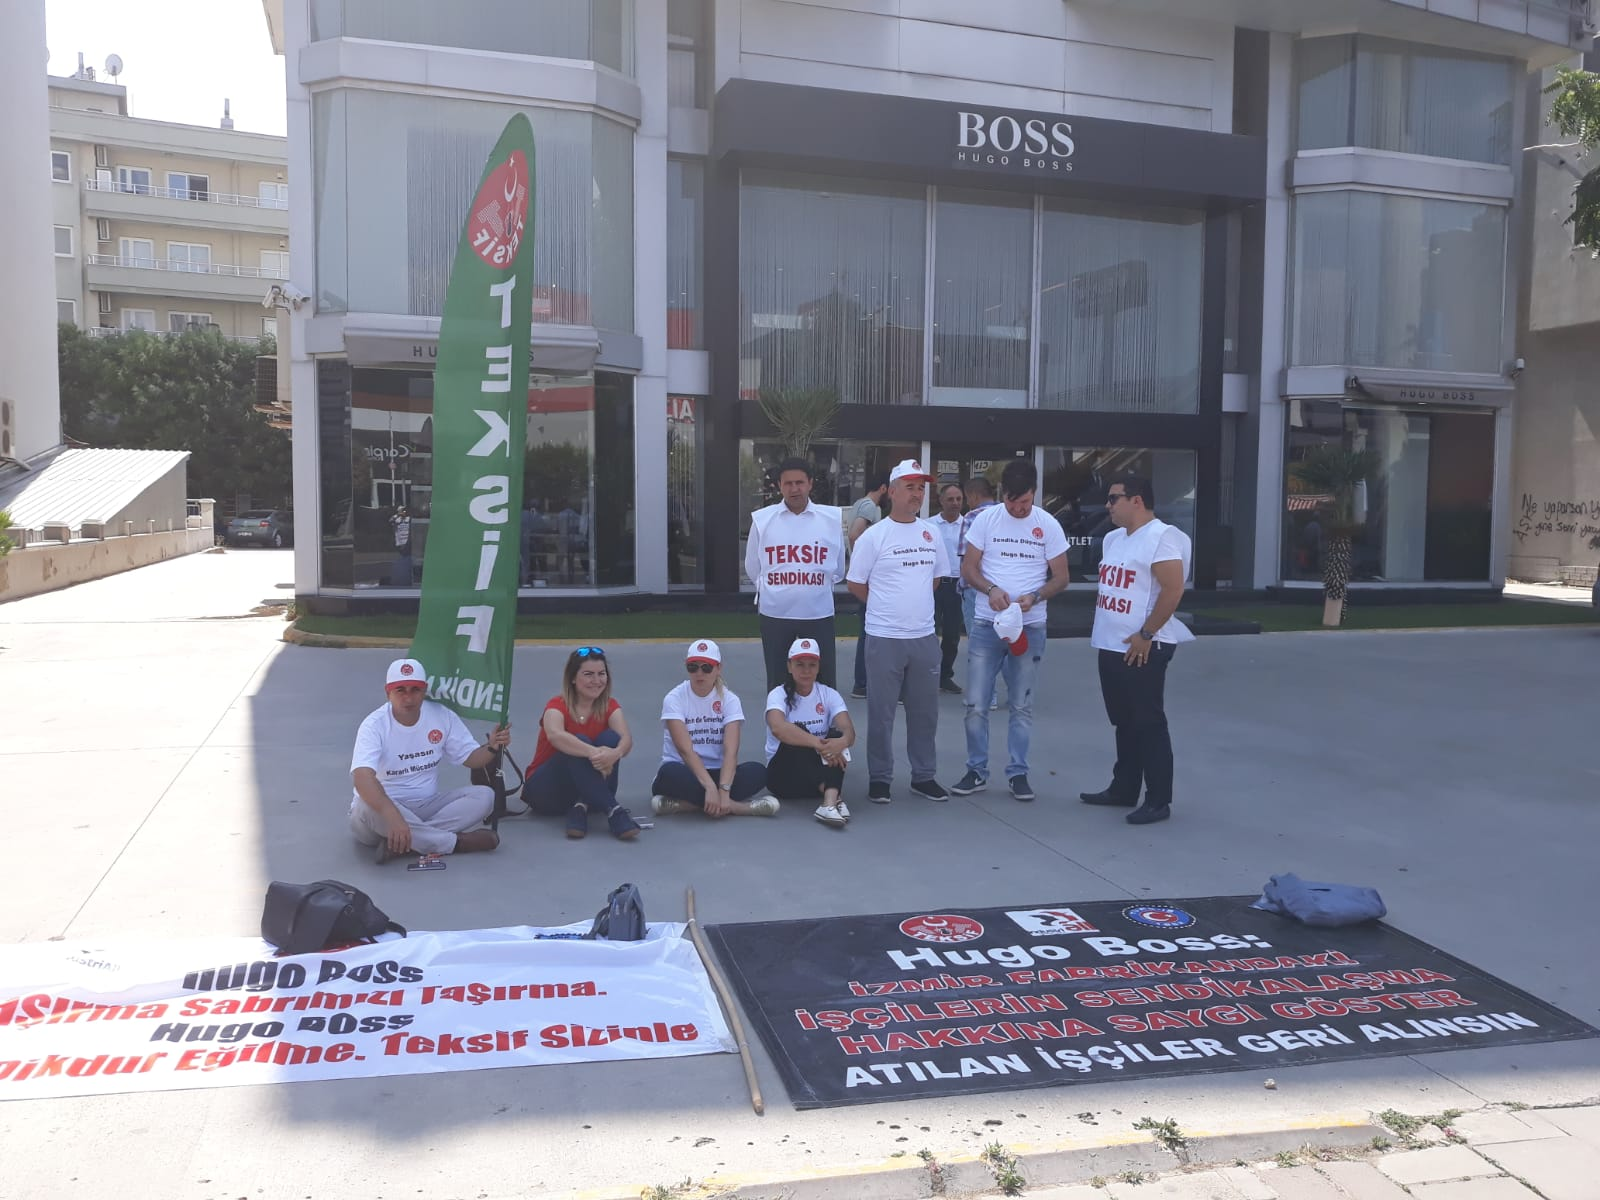 quality design shopping new products Hugo Boss: Stop Repressing Workers in Turkey! - Union League